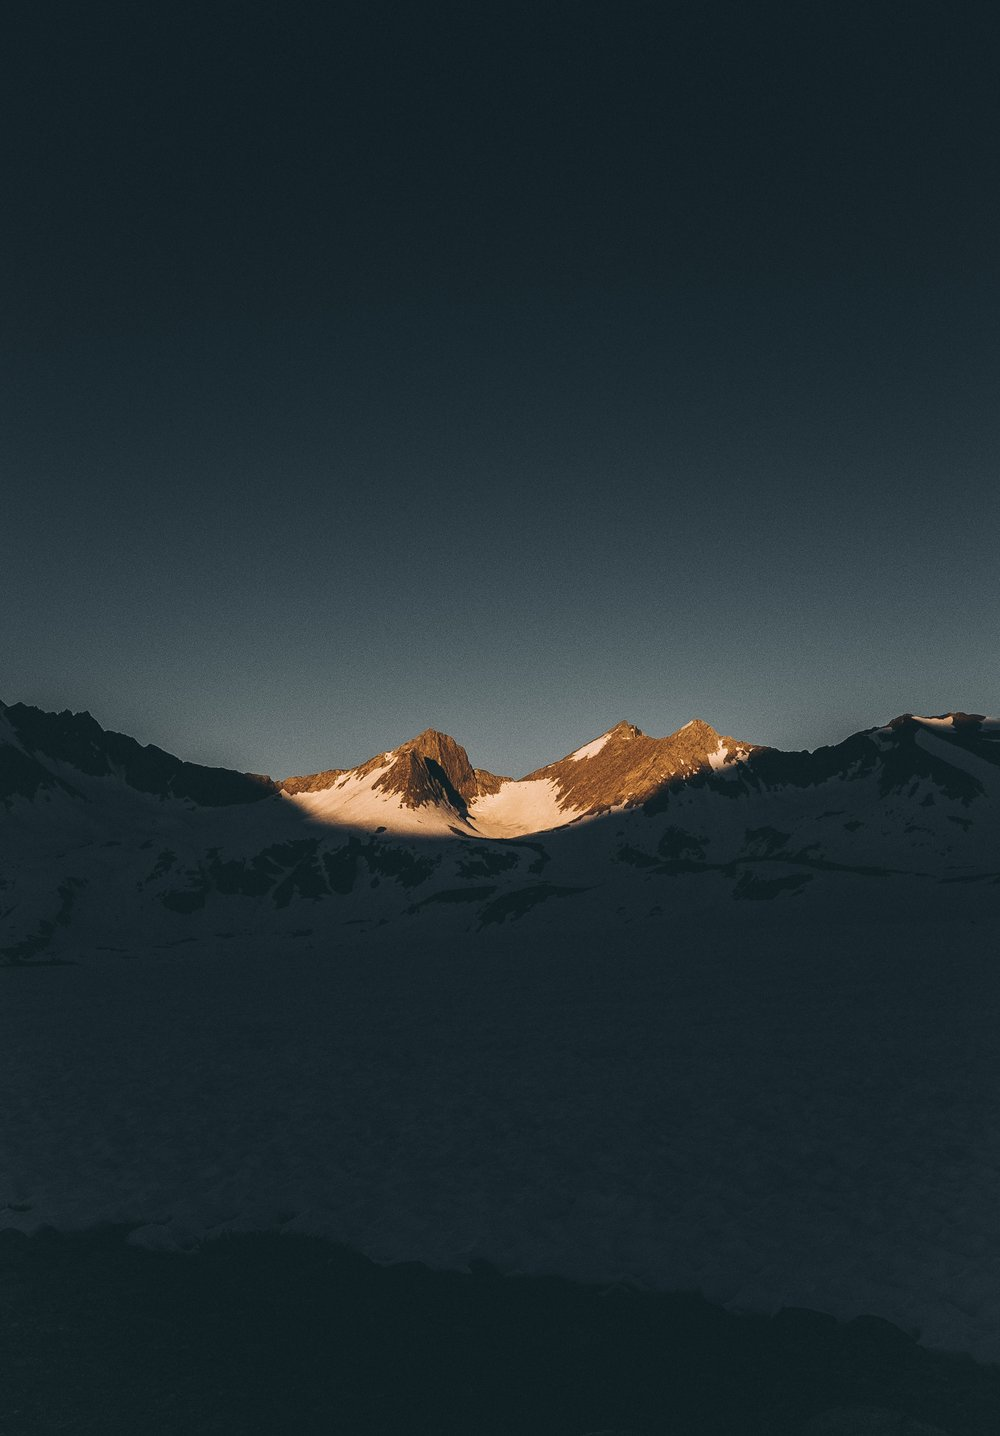 Mather Pass poking out of the darkness